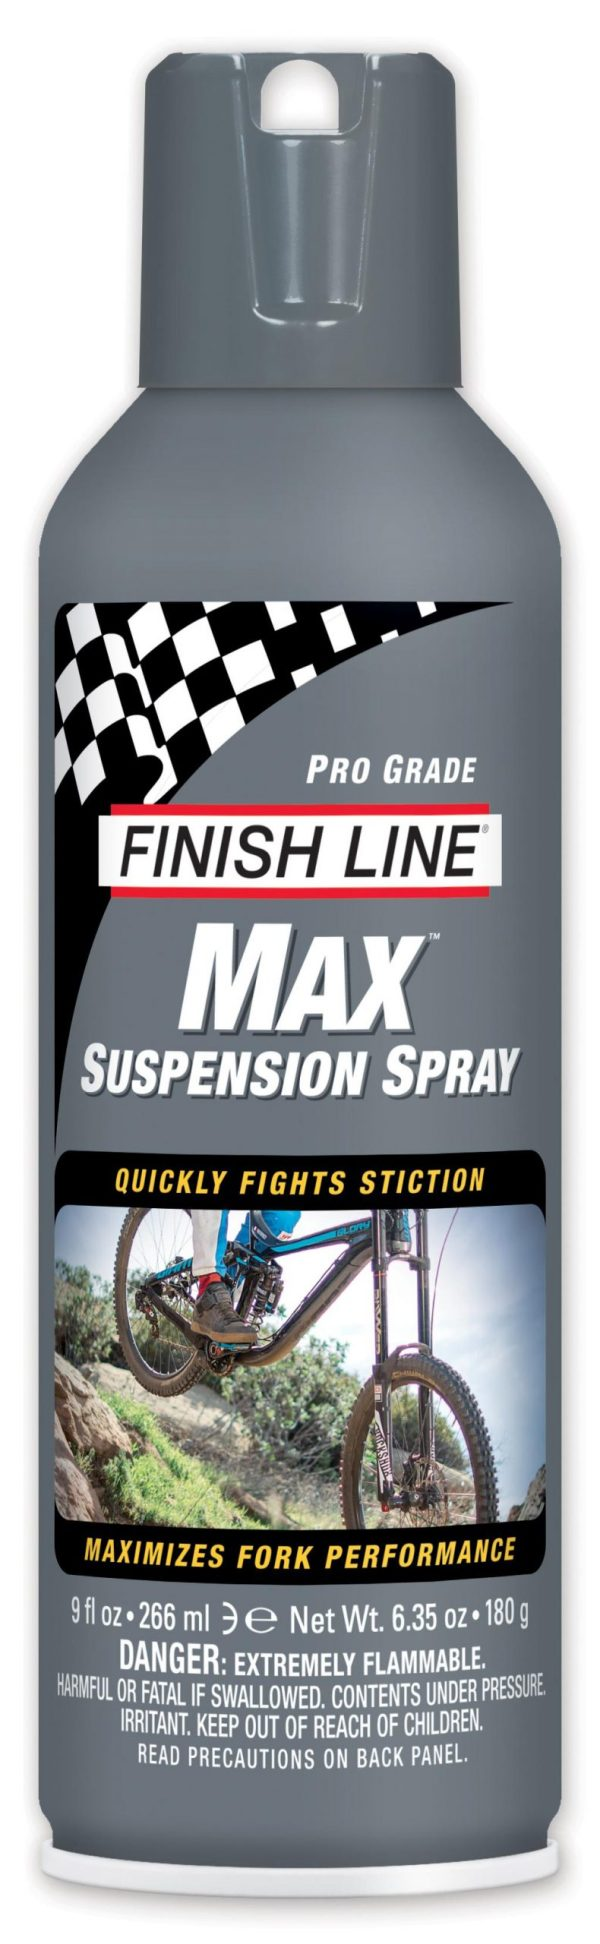 Max Suspension Gabel/Dämpferöl 266 ml Spray